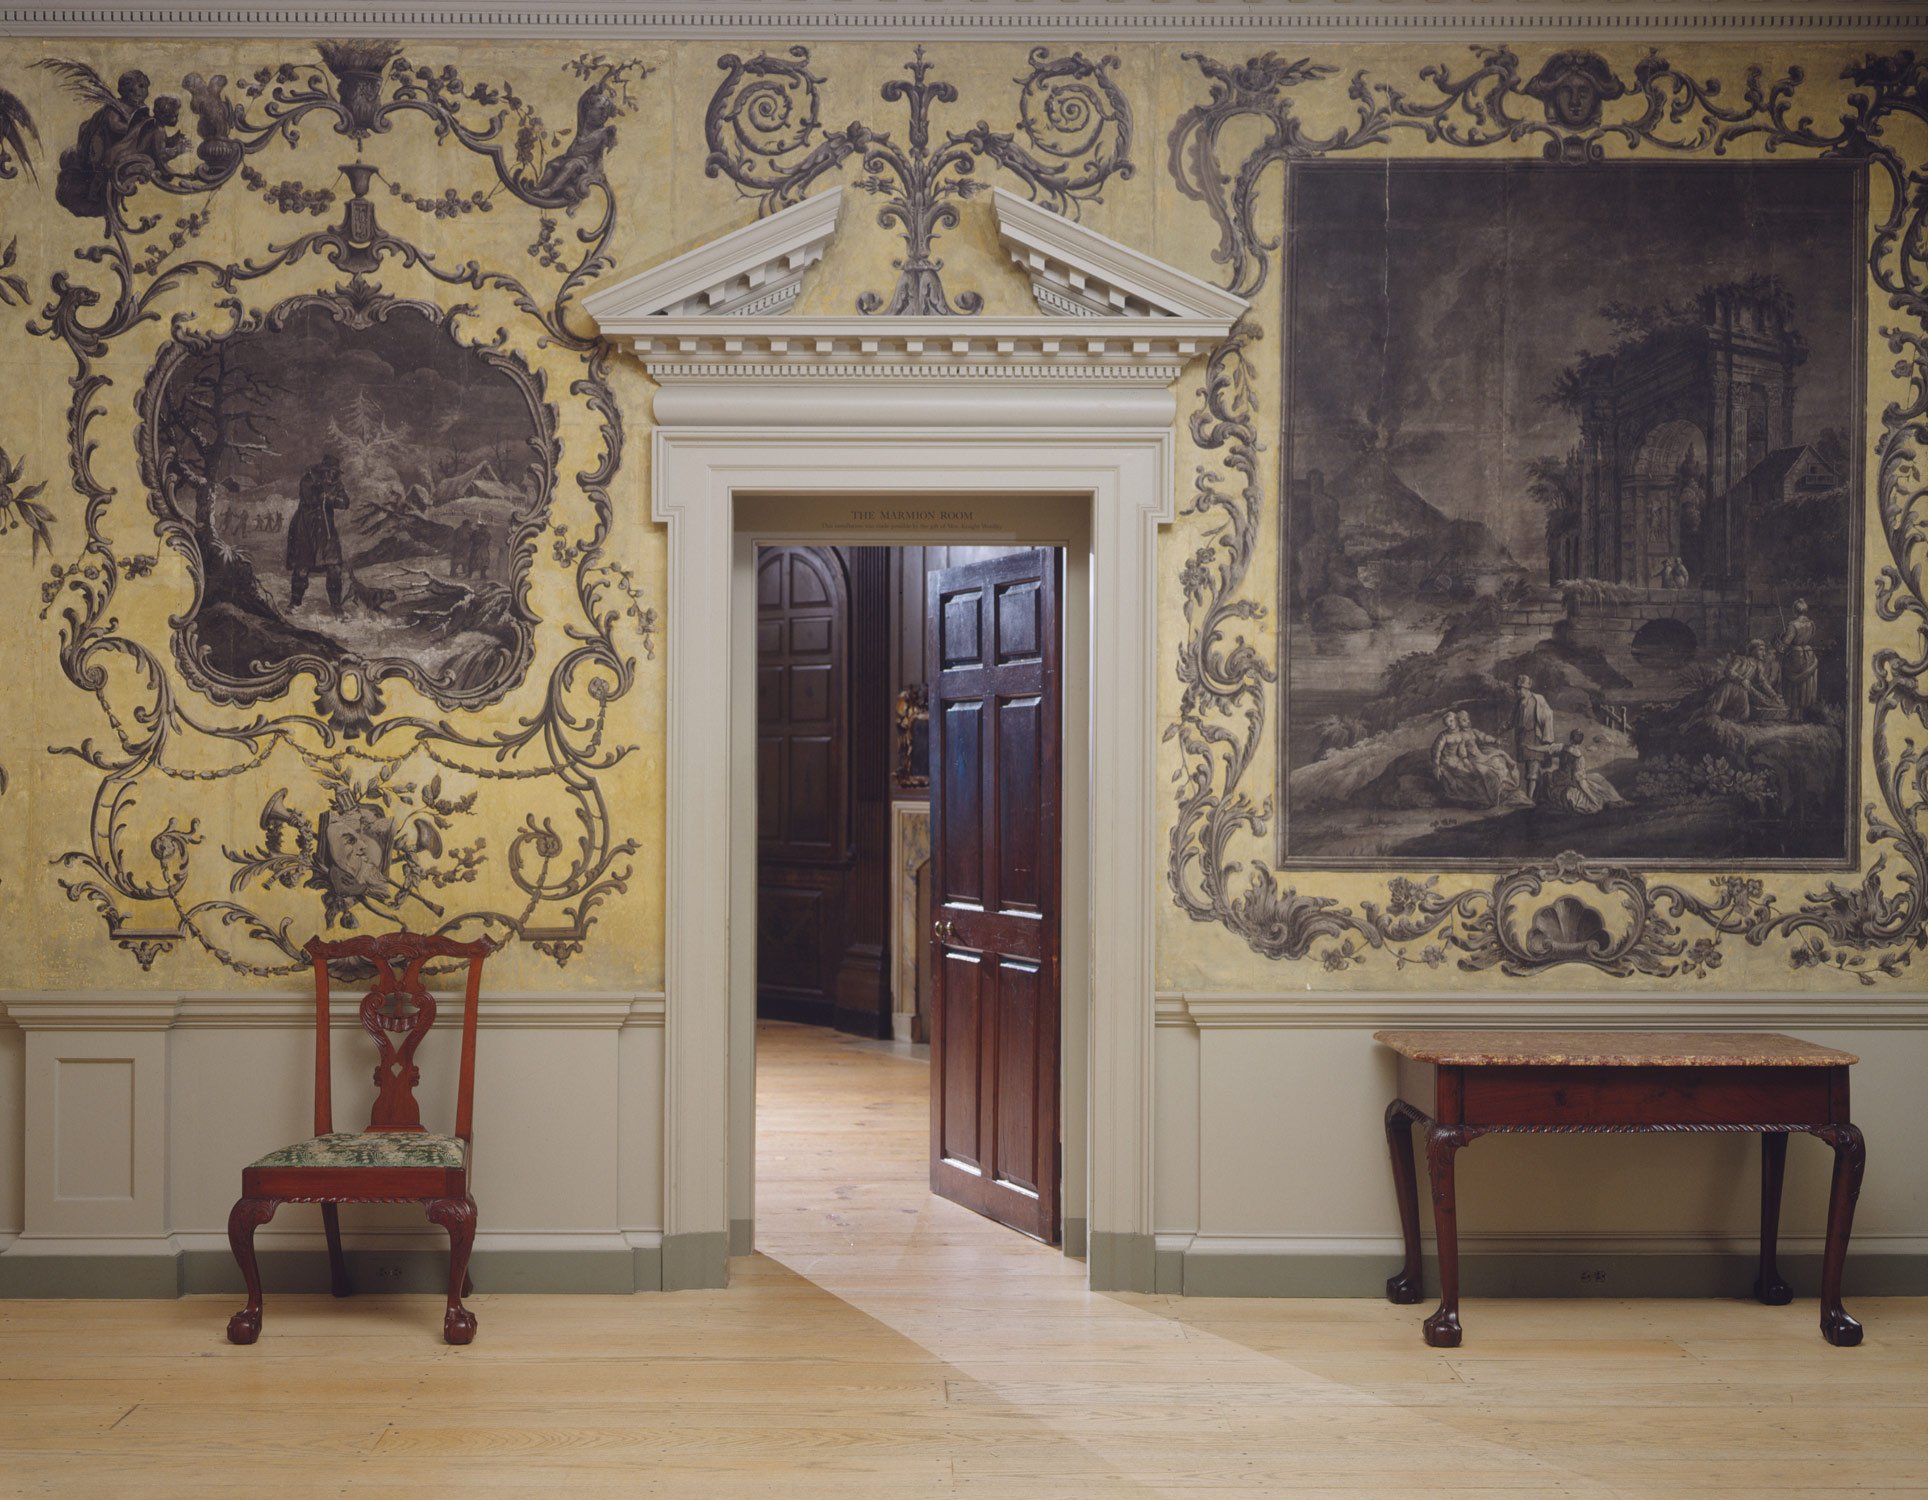 Woodwork and Wallpaper from the Great Hall of Van Rensselaer Manor House